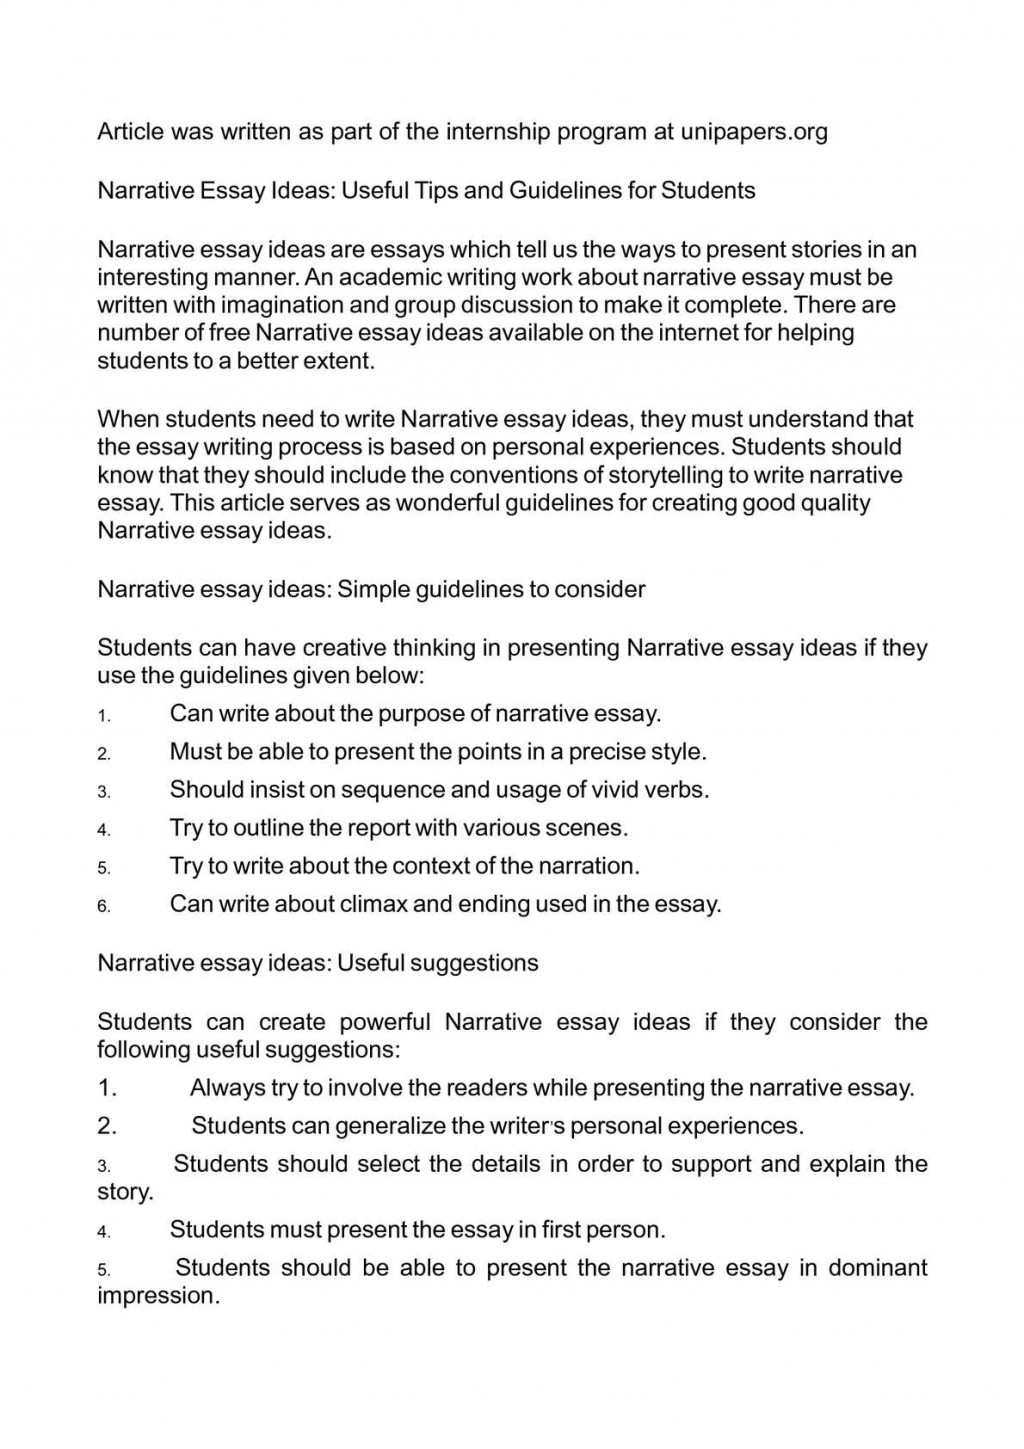 025 Writing Narrative Essay P1 Amazing A About Being Judged Quizlet Powerpoint Large